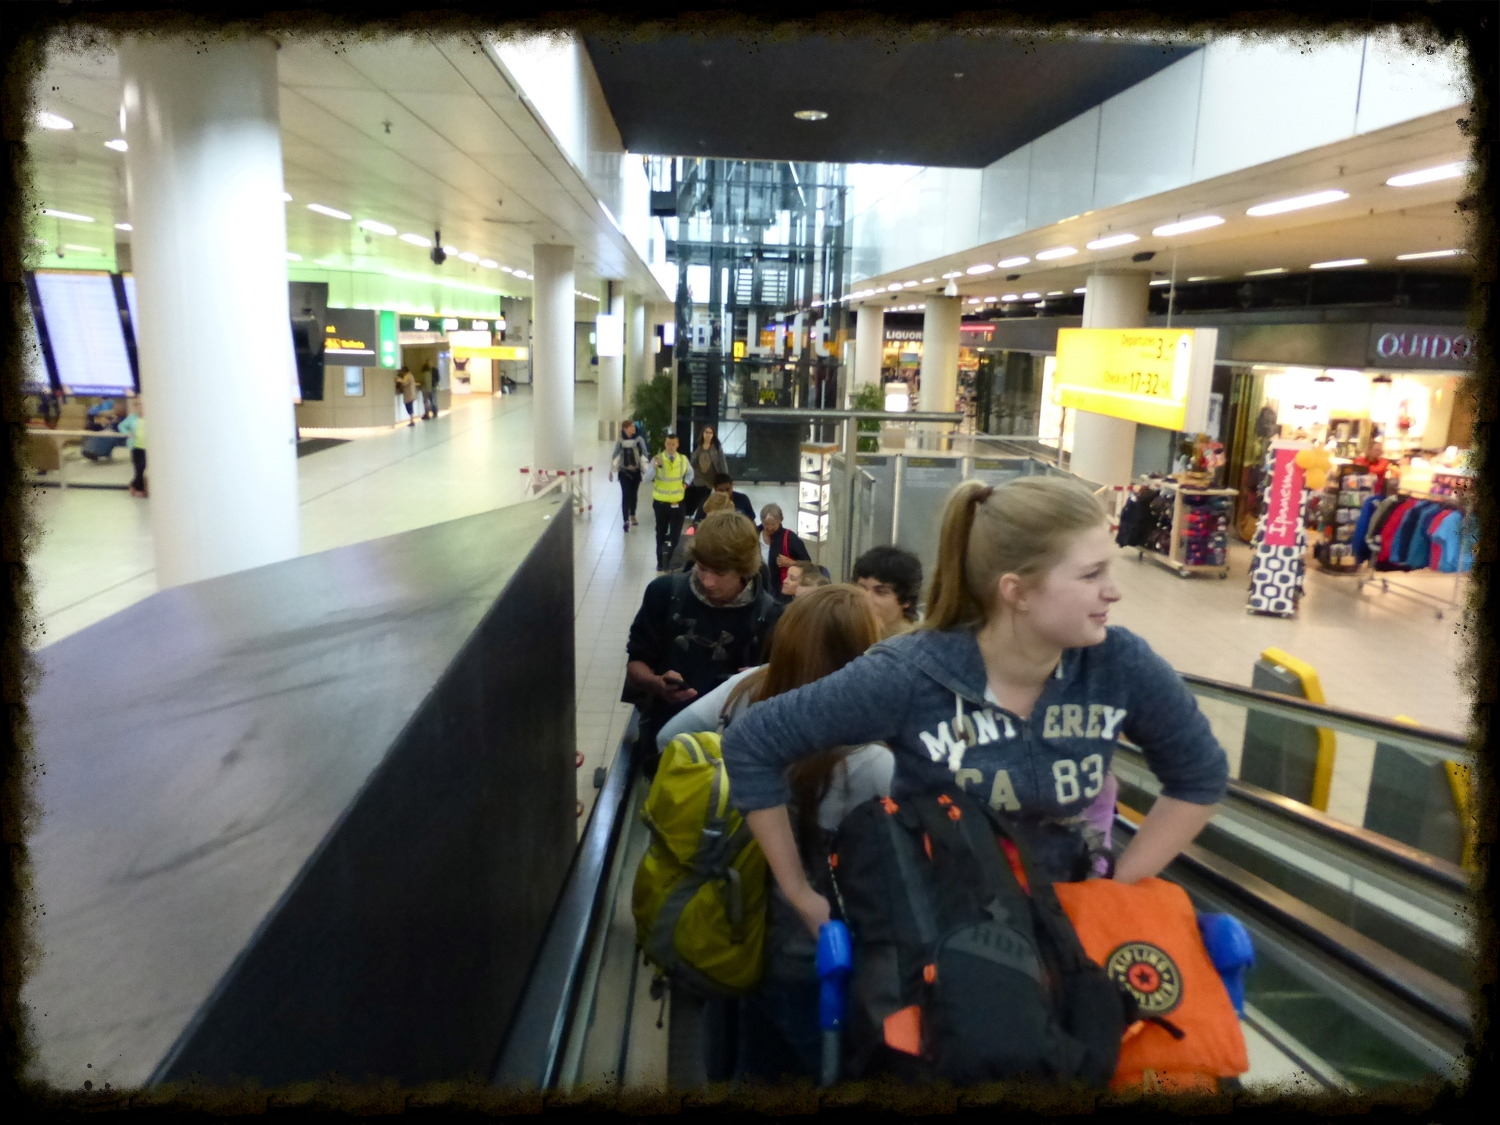 At Schiphol airport, ascending the escalator to check in!   photo courtesy of Chanthea de Jonge